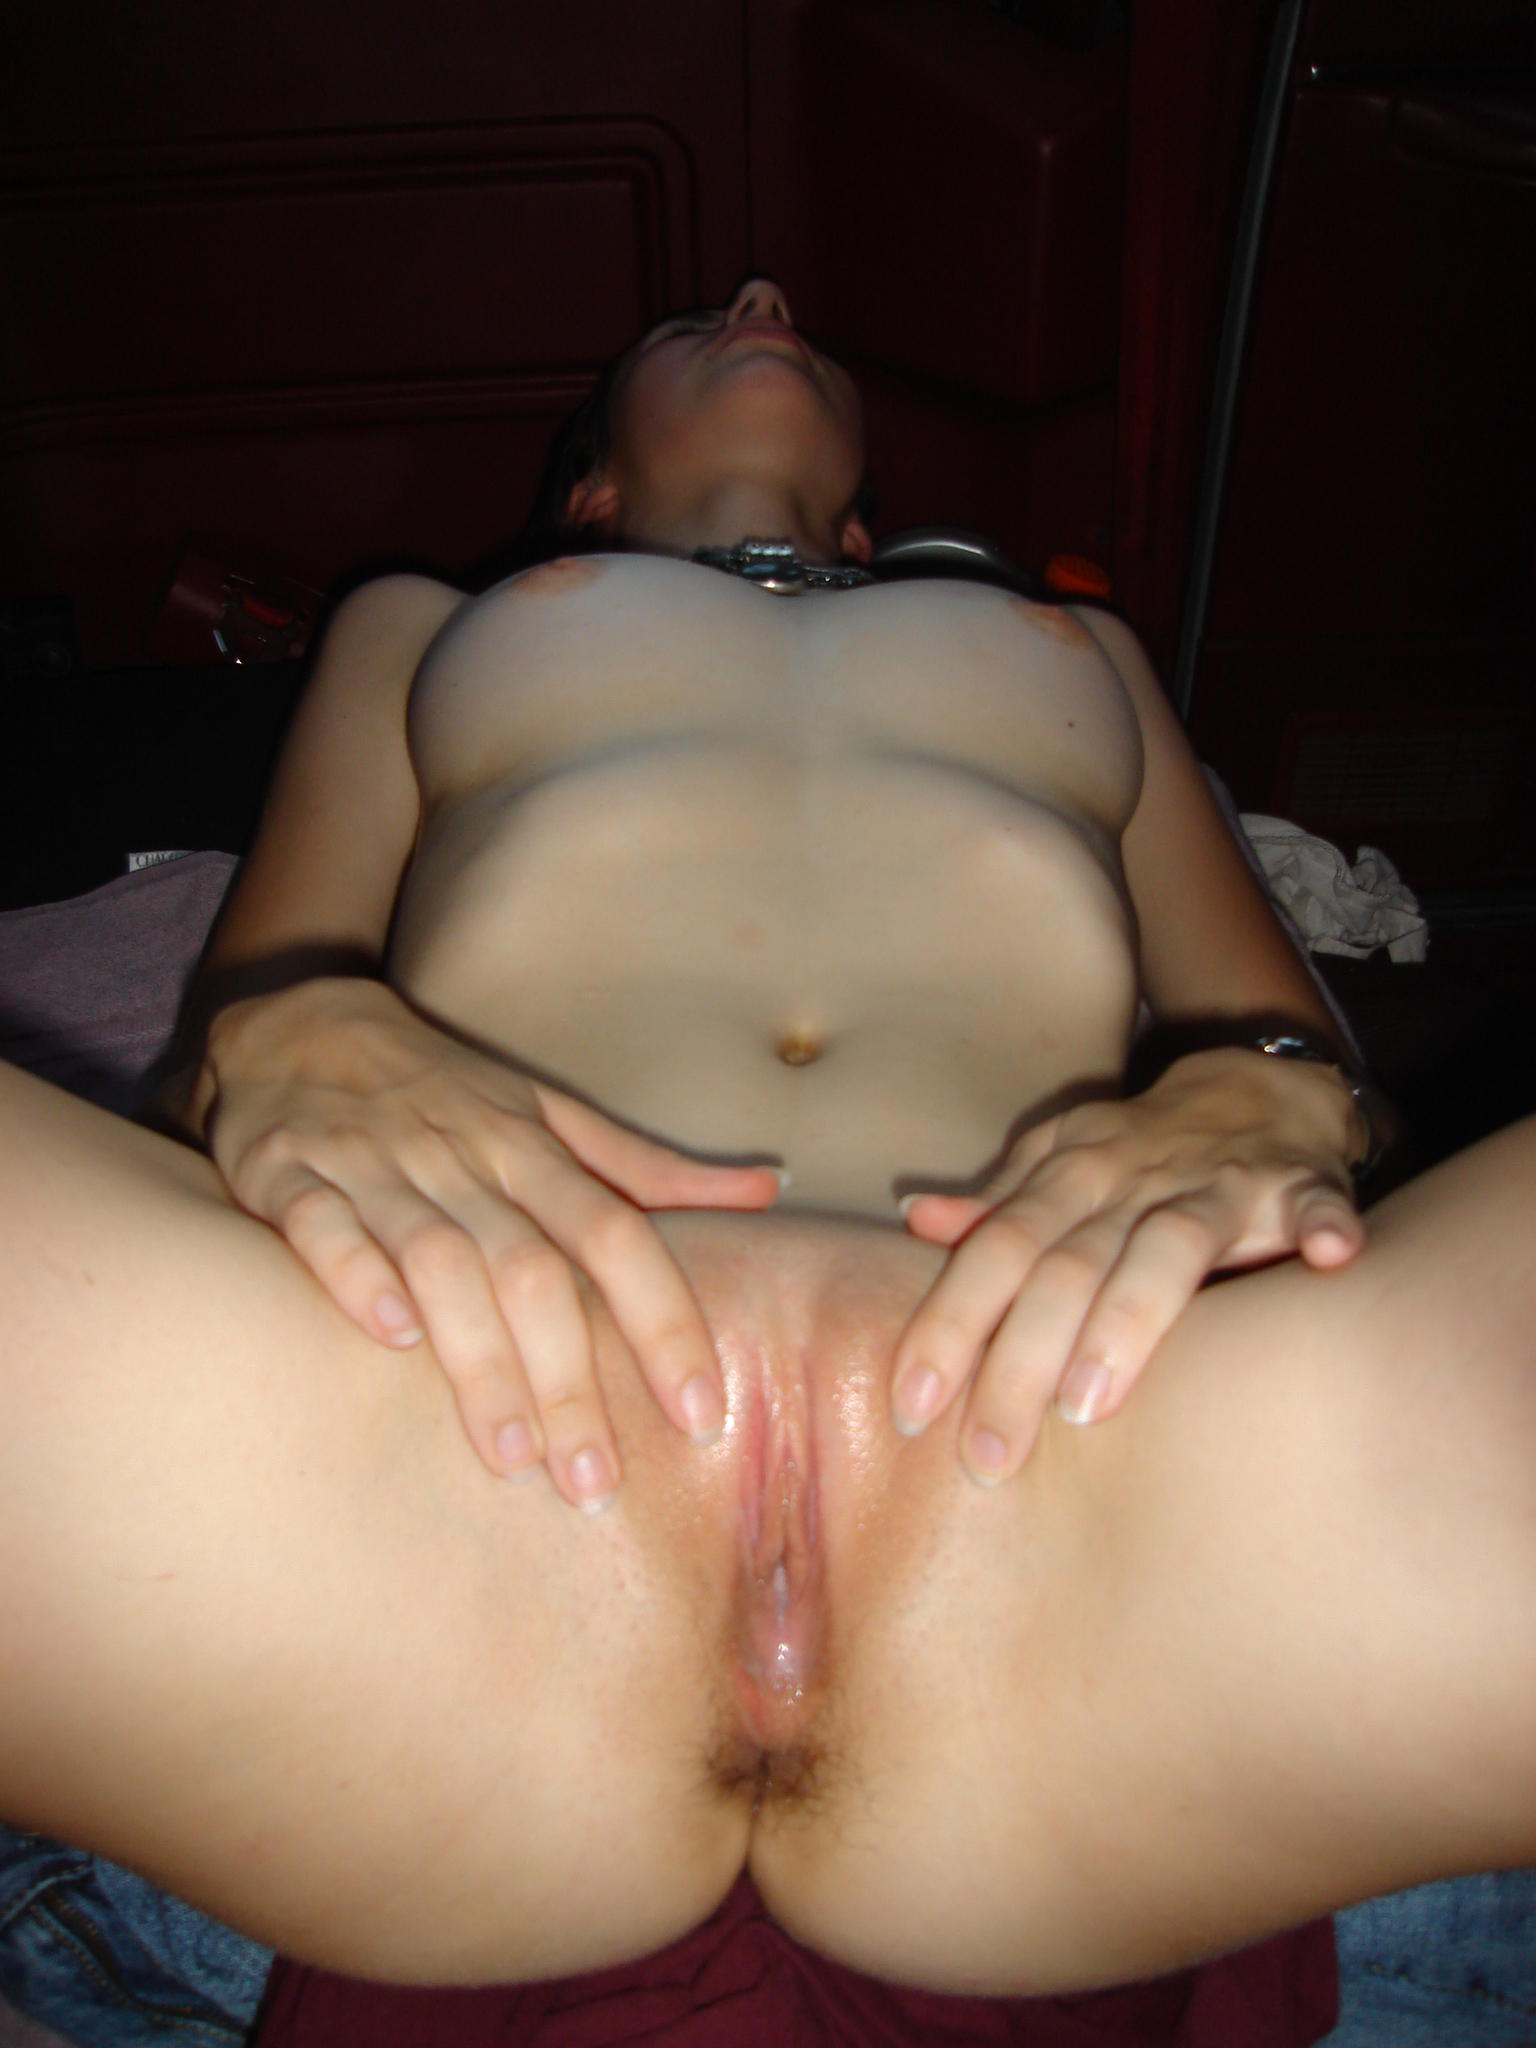 privat spa stockholm sex filmer gratis